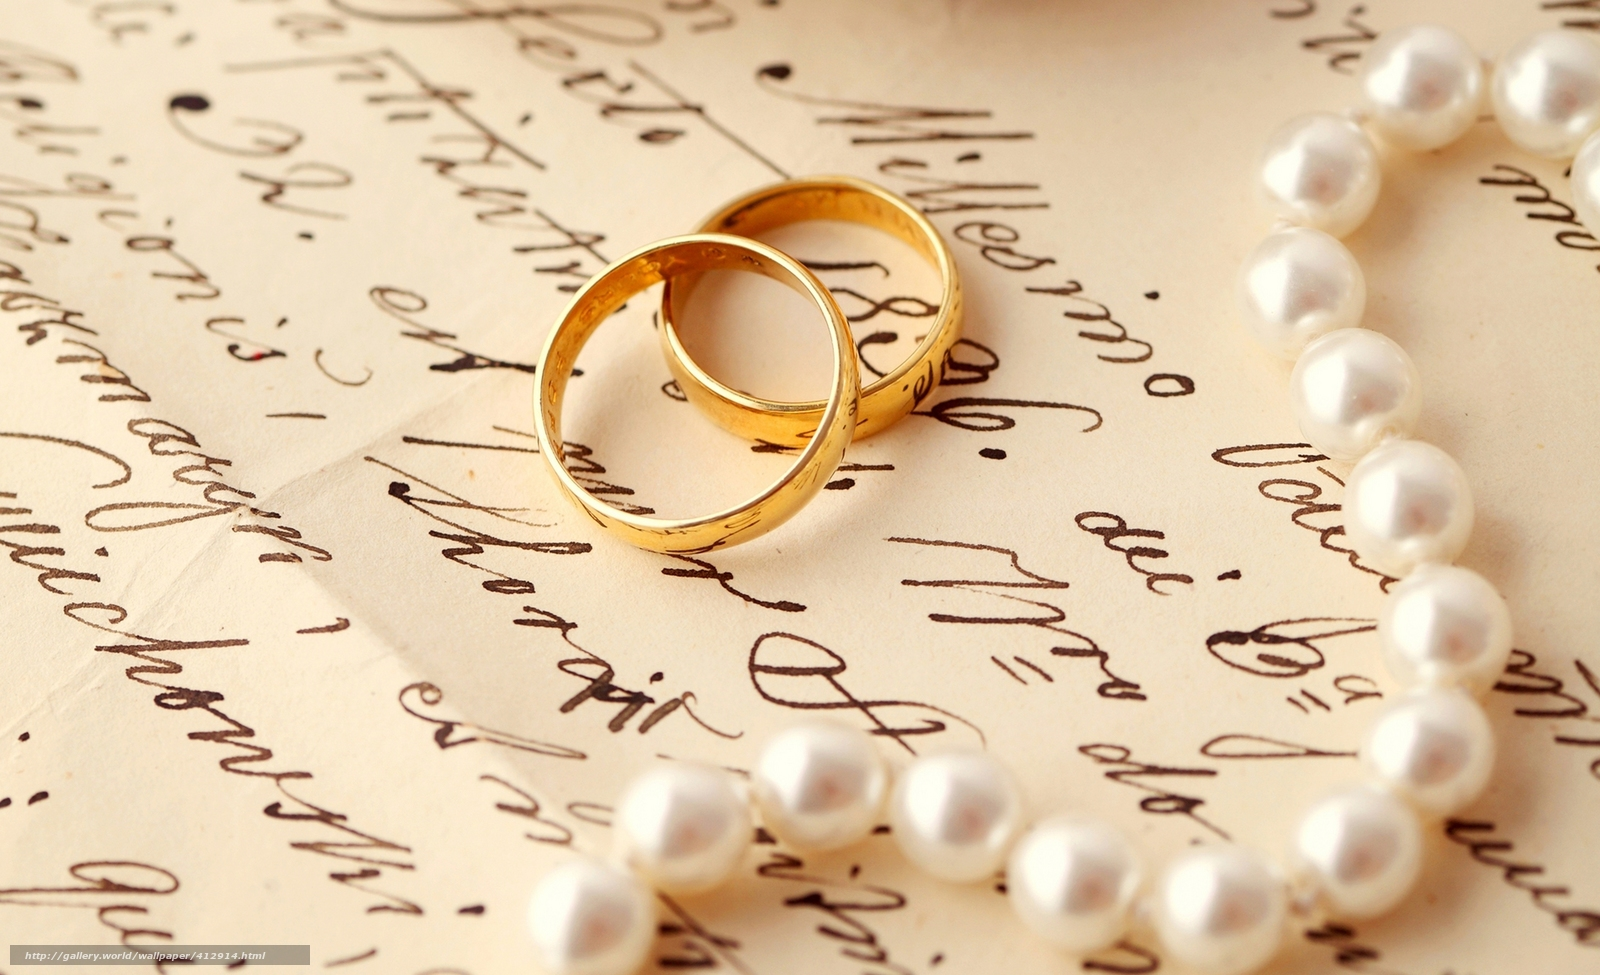 Download wallpaper ring engagement letter pearl free desktop wallpaper in the resolution 3840x2340 picture 412914